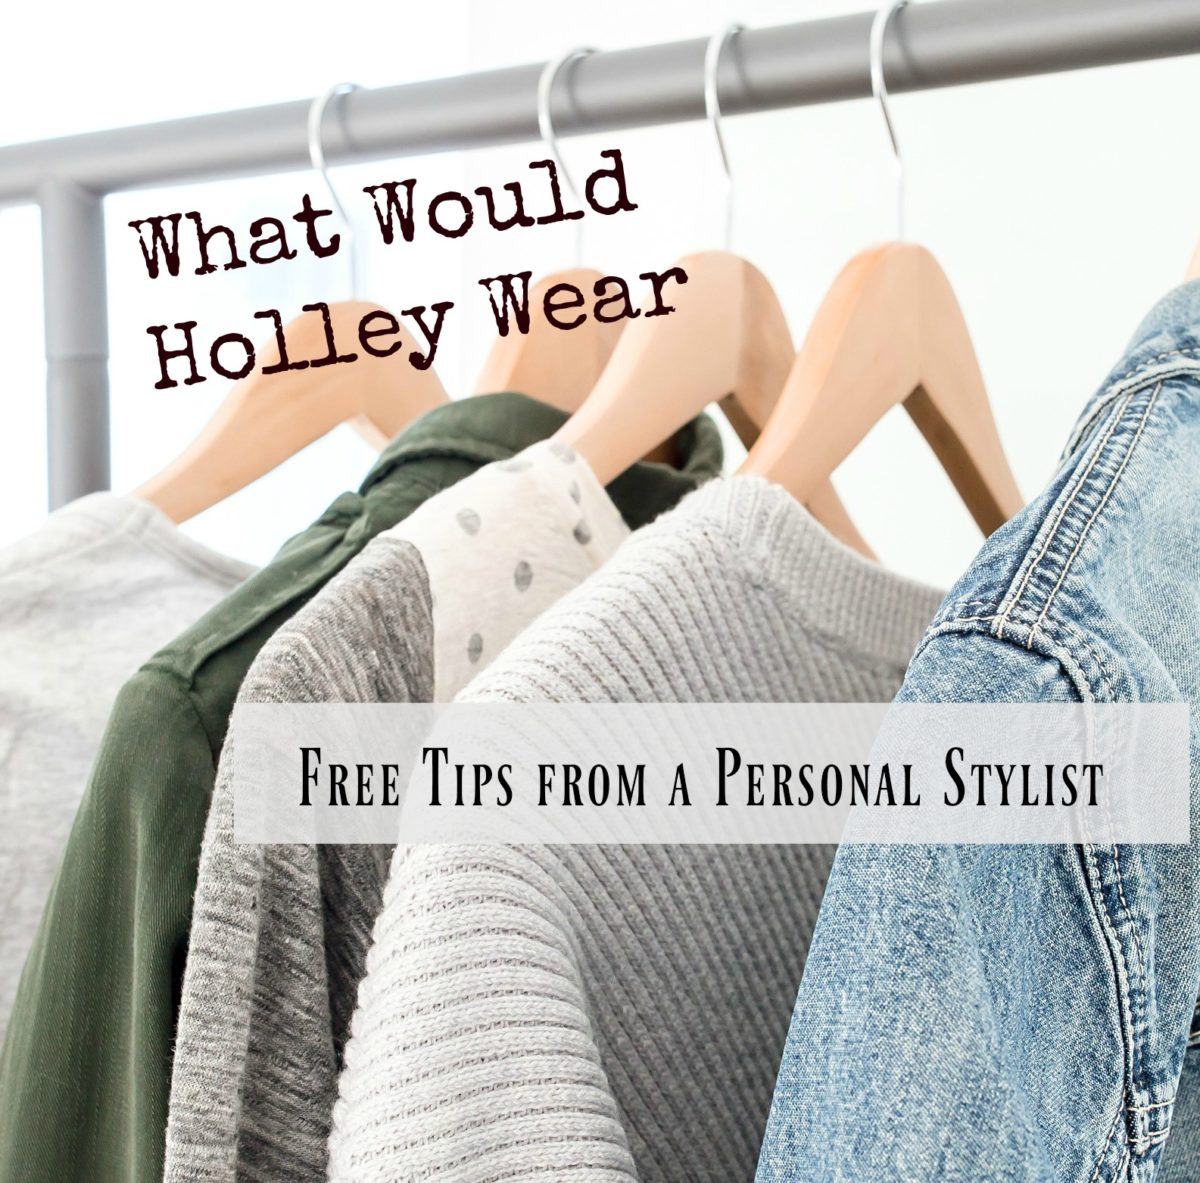 What Would Holley Wear:  Five Free Tips from a Stylist 2nd Edition